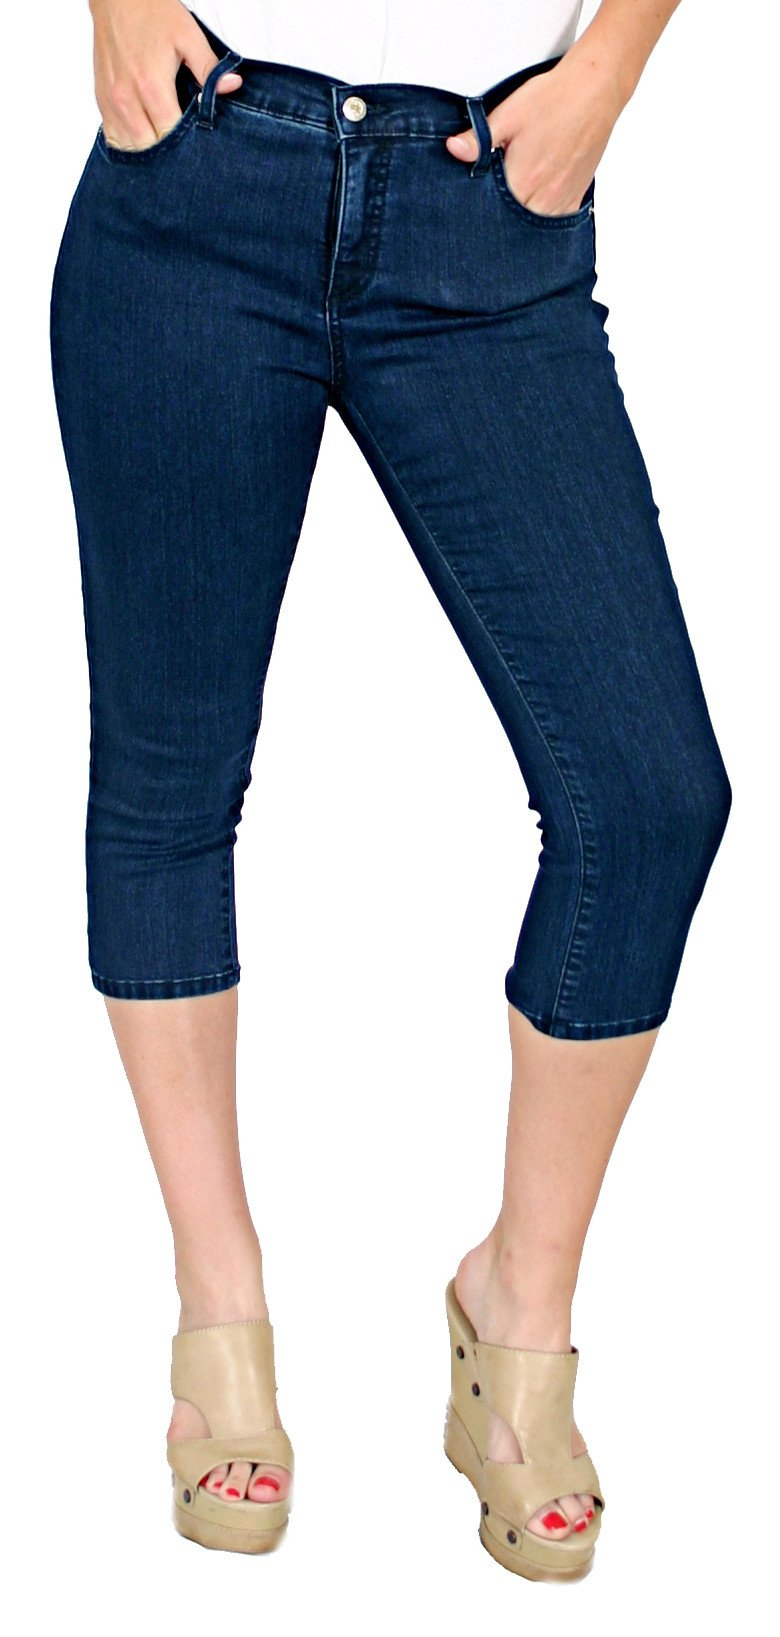 TrueSlim™ Denim Basic Capri